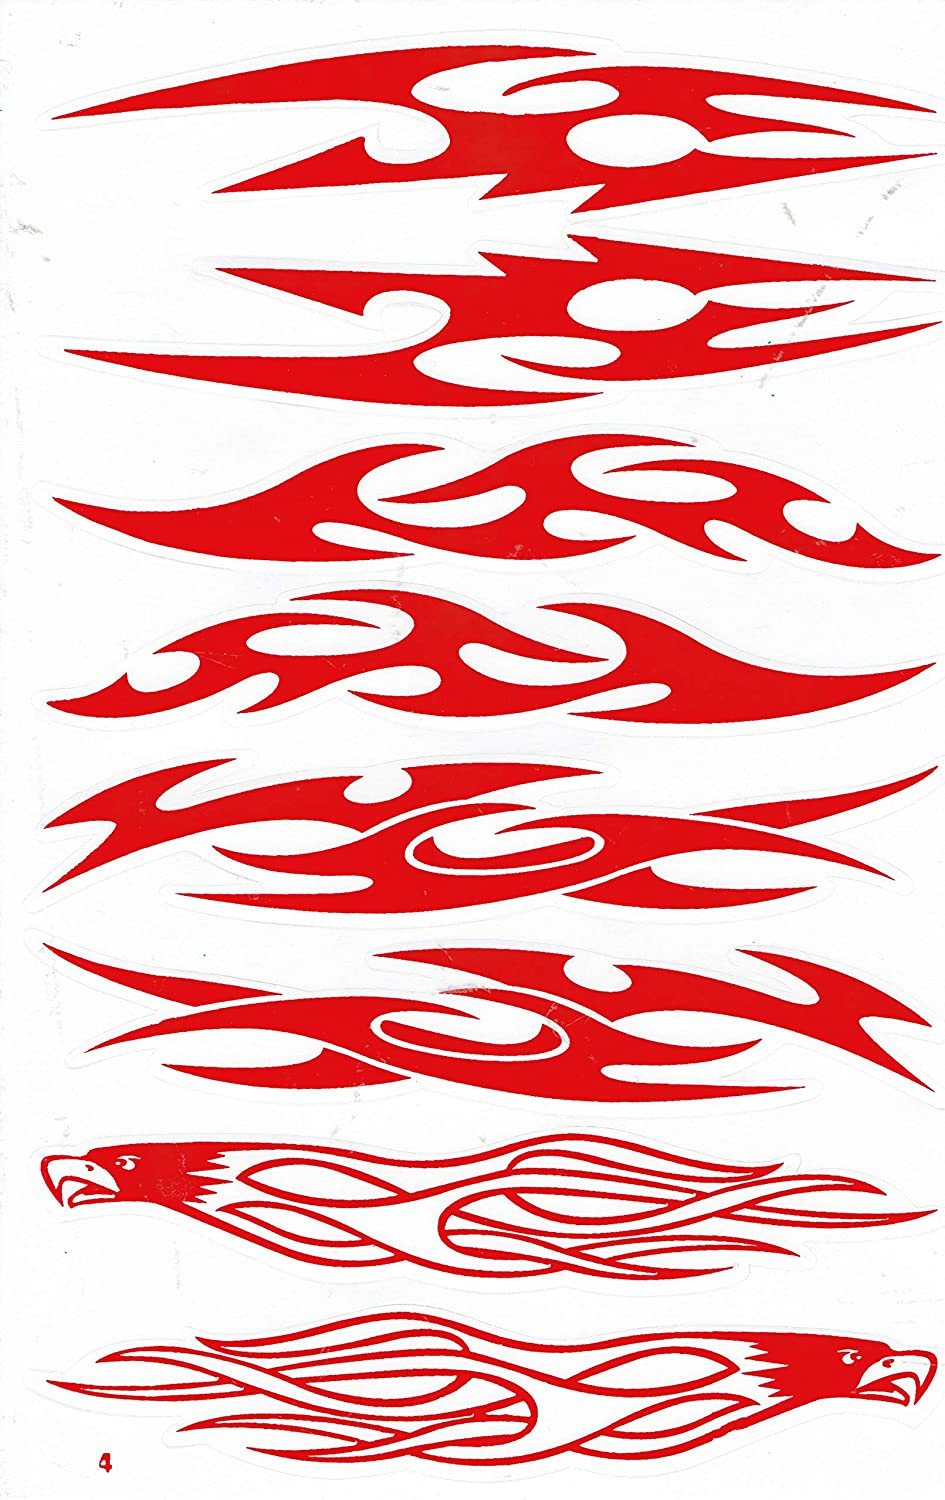 by soljo Flammes feu Rouge Sticker Tuning Racing Motocross Autocollant Feuille 27 x 18 cm